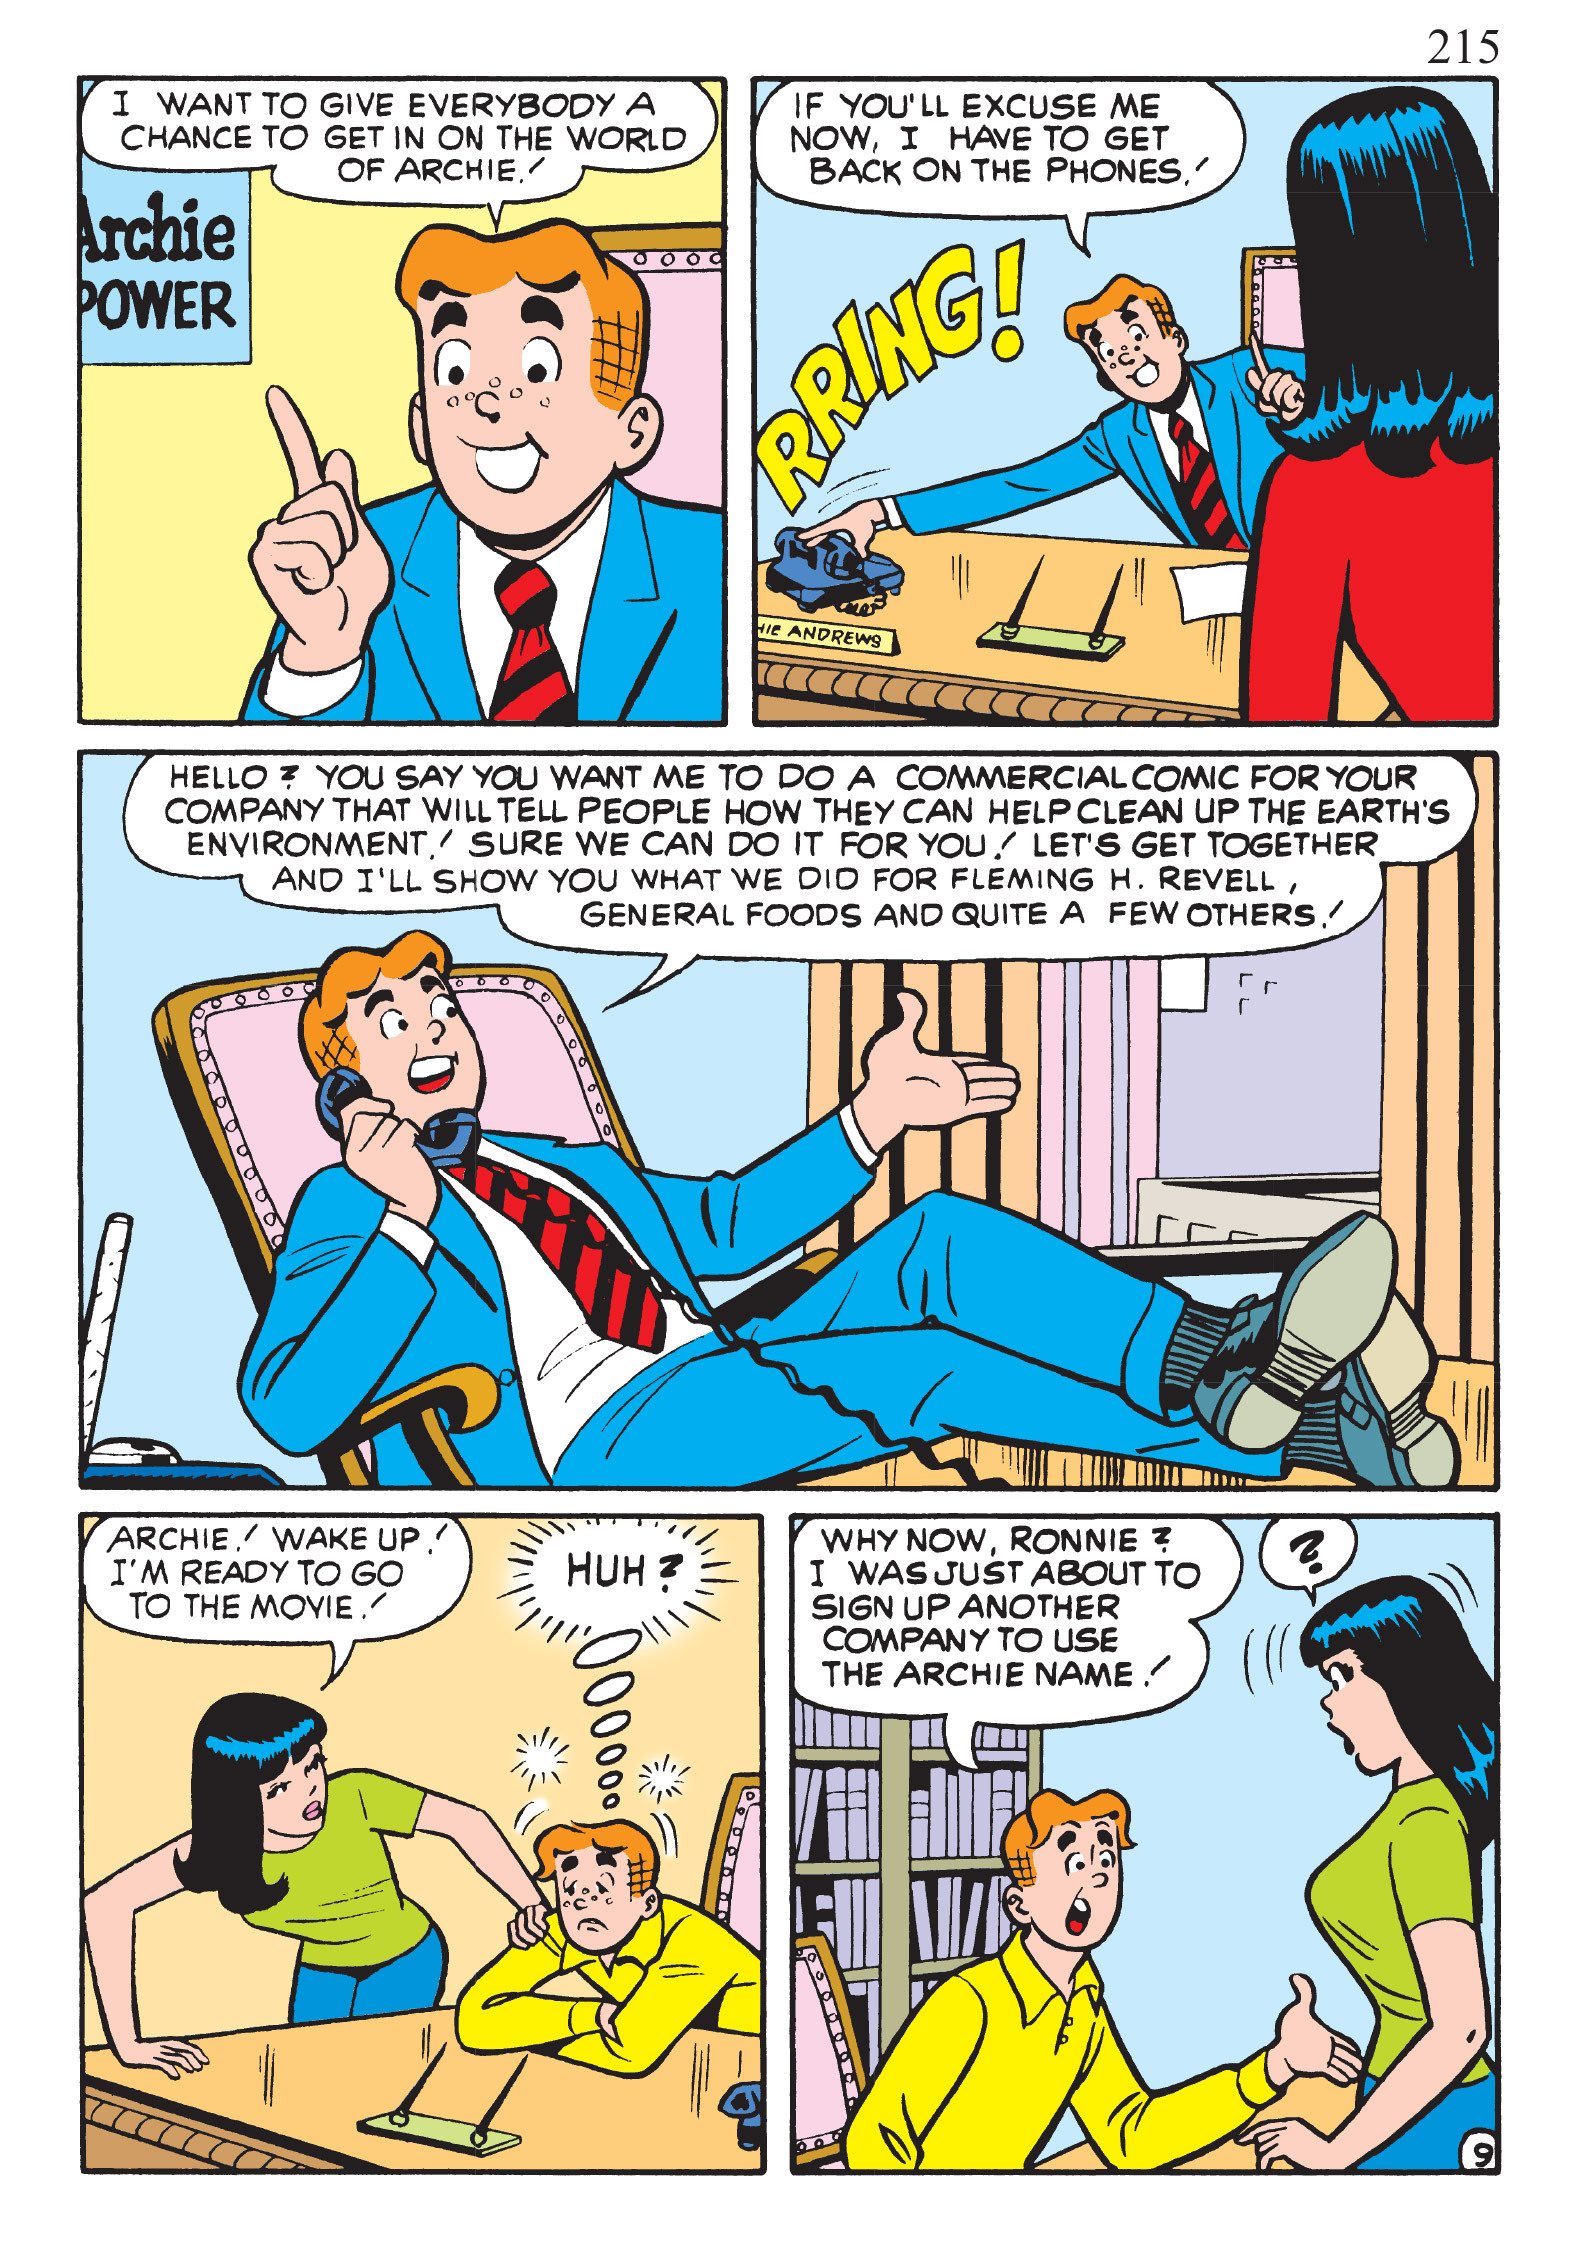 Read online The Best of Archie Comics comic -  Issue # TPB 1 (Part 1) - 211